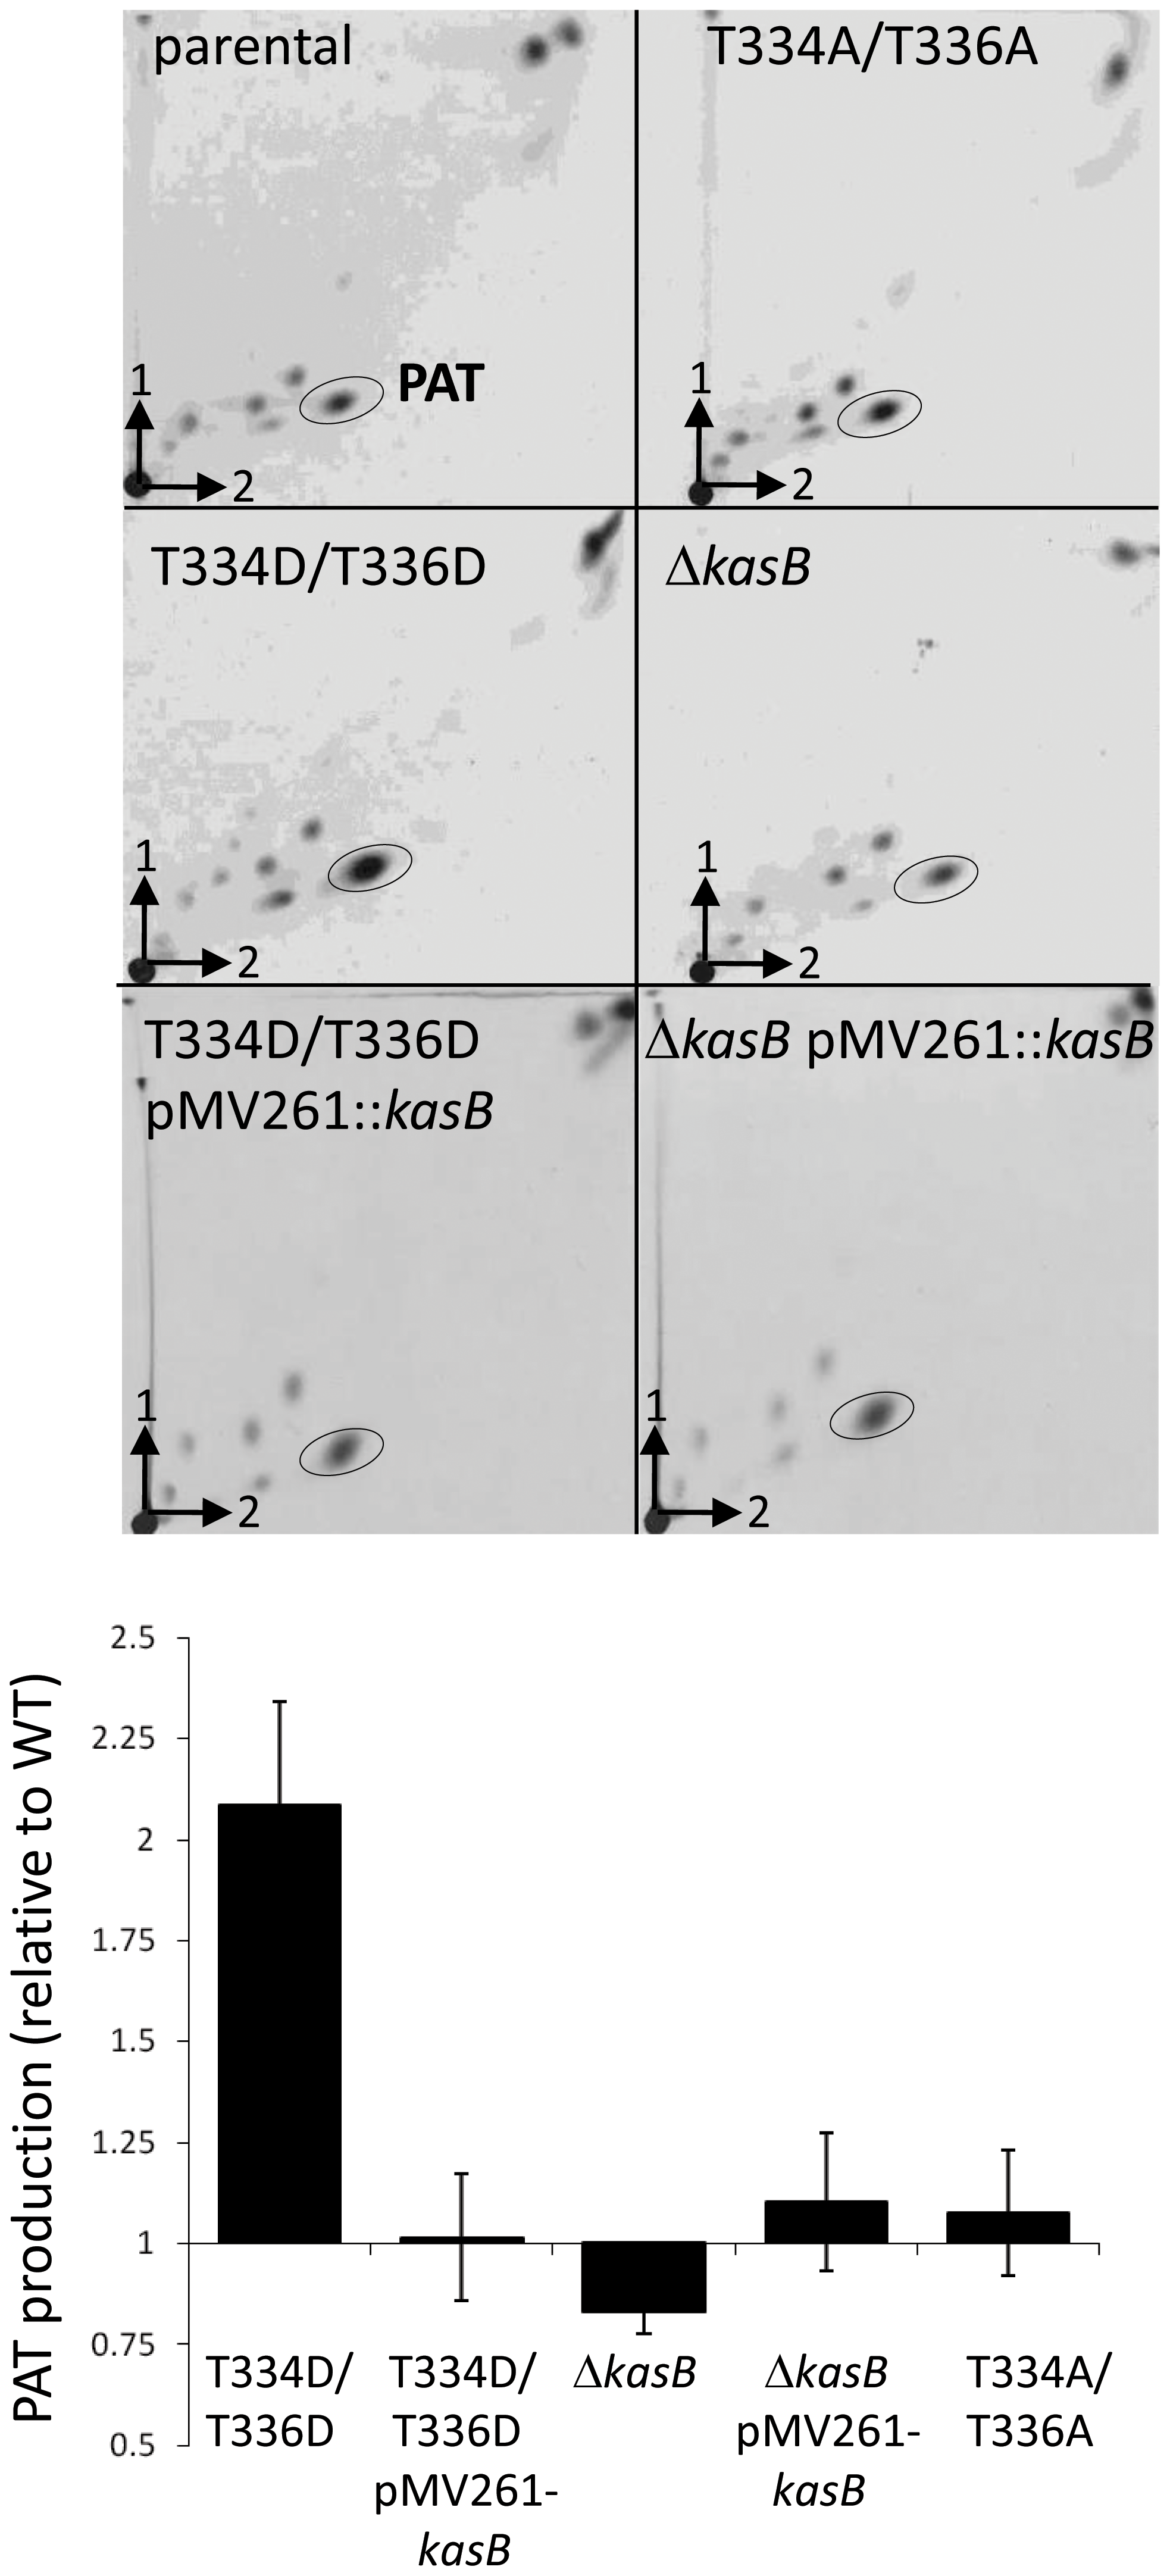 Expression of PAT in the <i>M. tuberculosis kasB</i> variants.